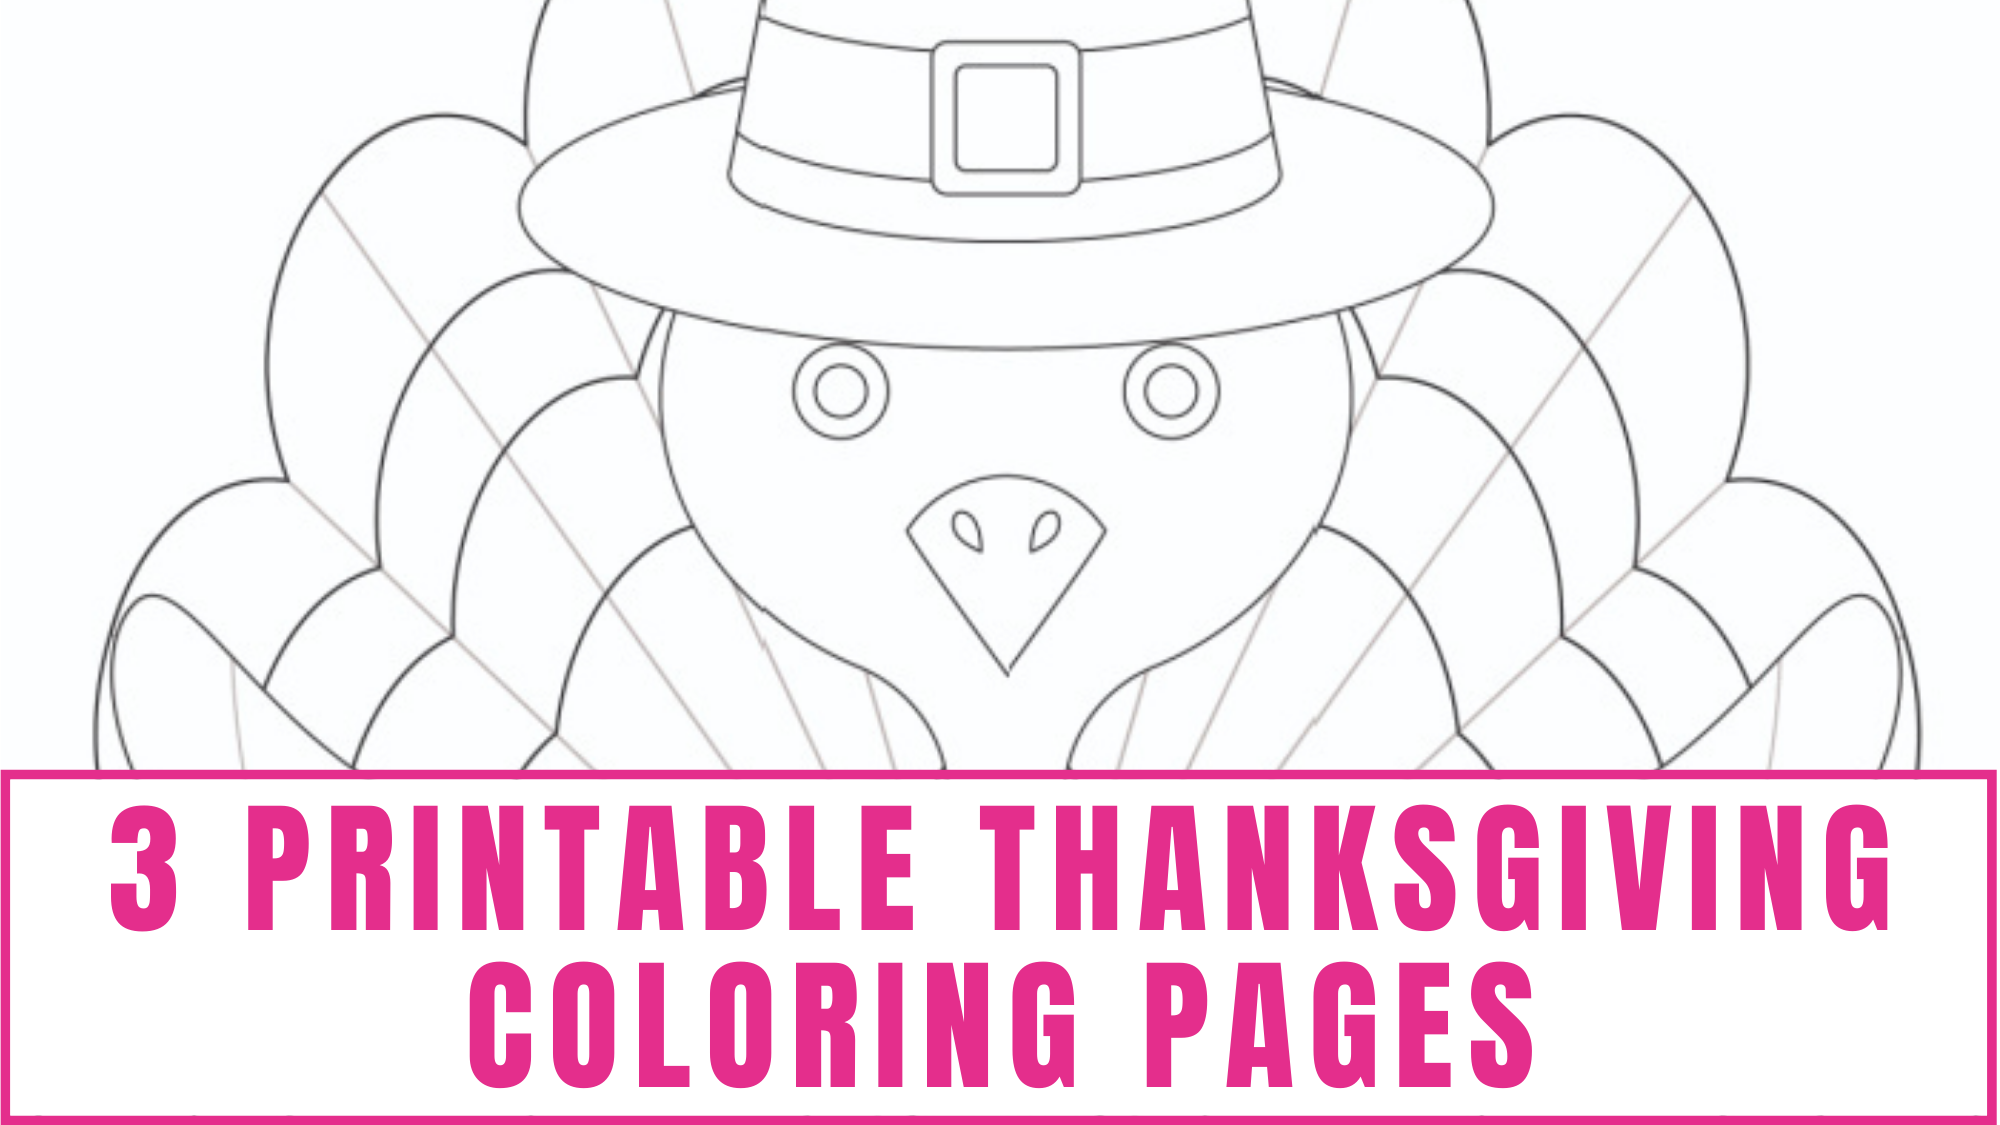 Need a printable turkey for a fall craft for kids? These printable Thanksgiving coloring pages free downloads not only contain a cute printable turkey but more fun Thanksgiving coloring sheets as well.